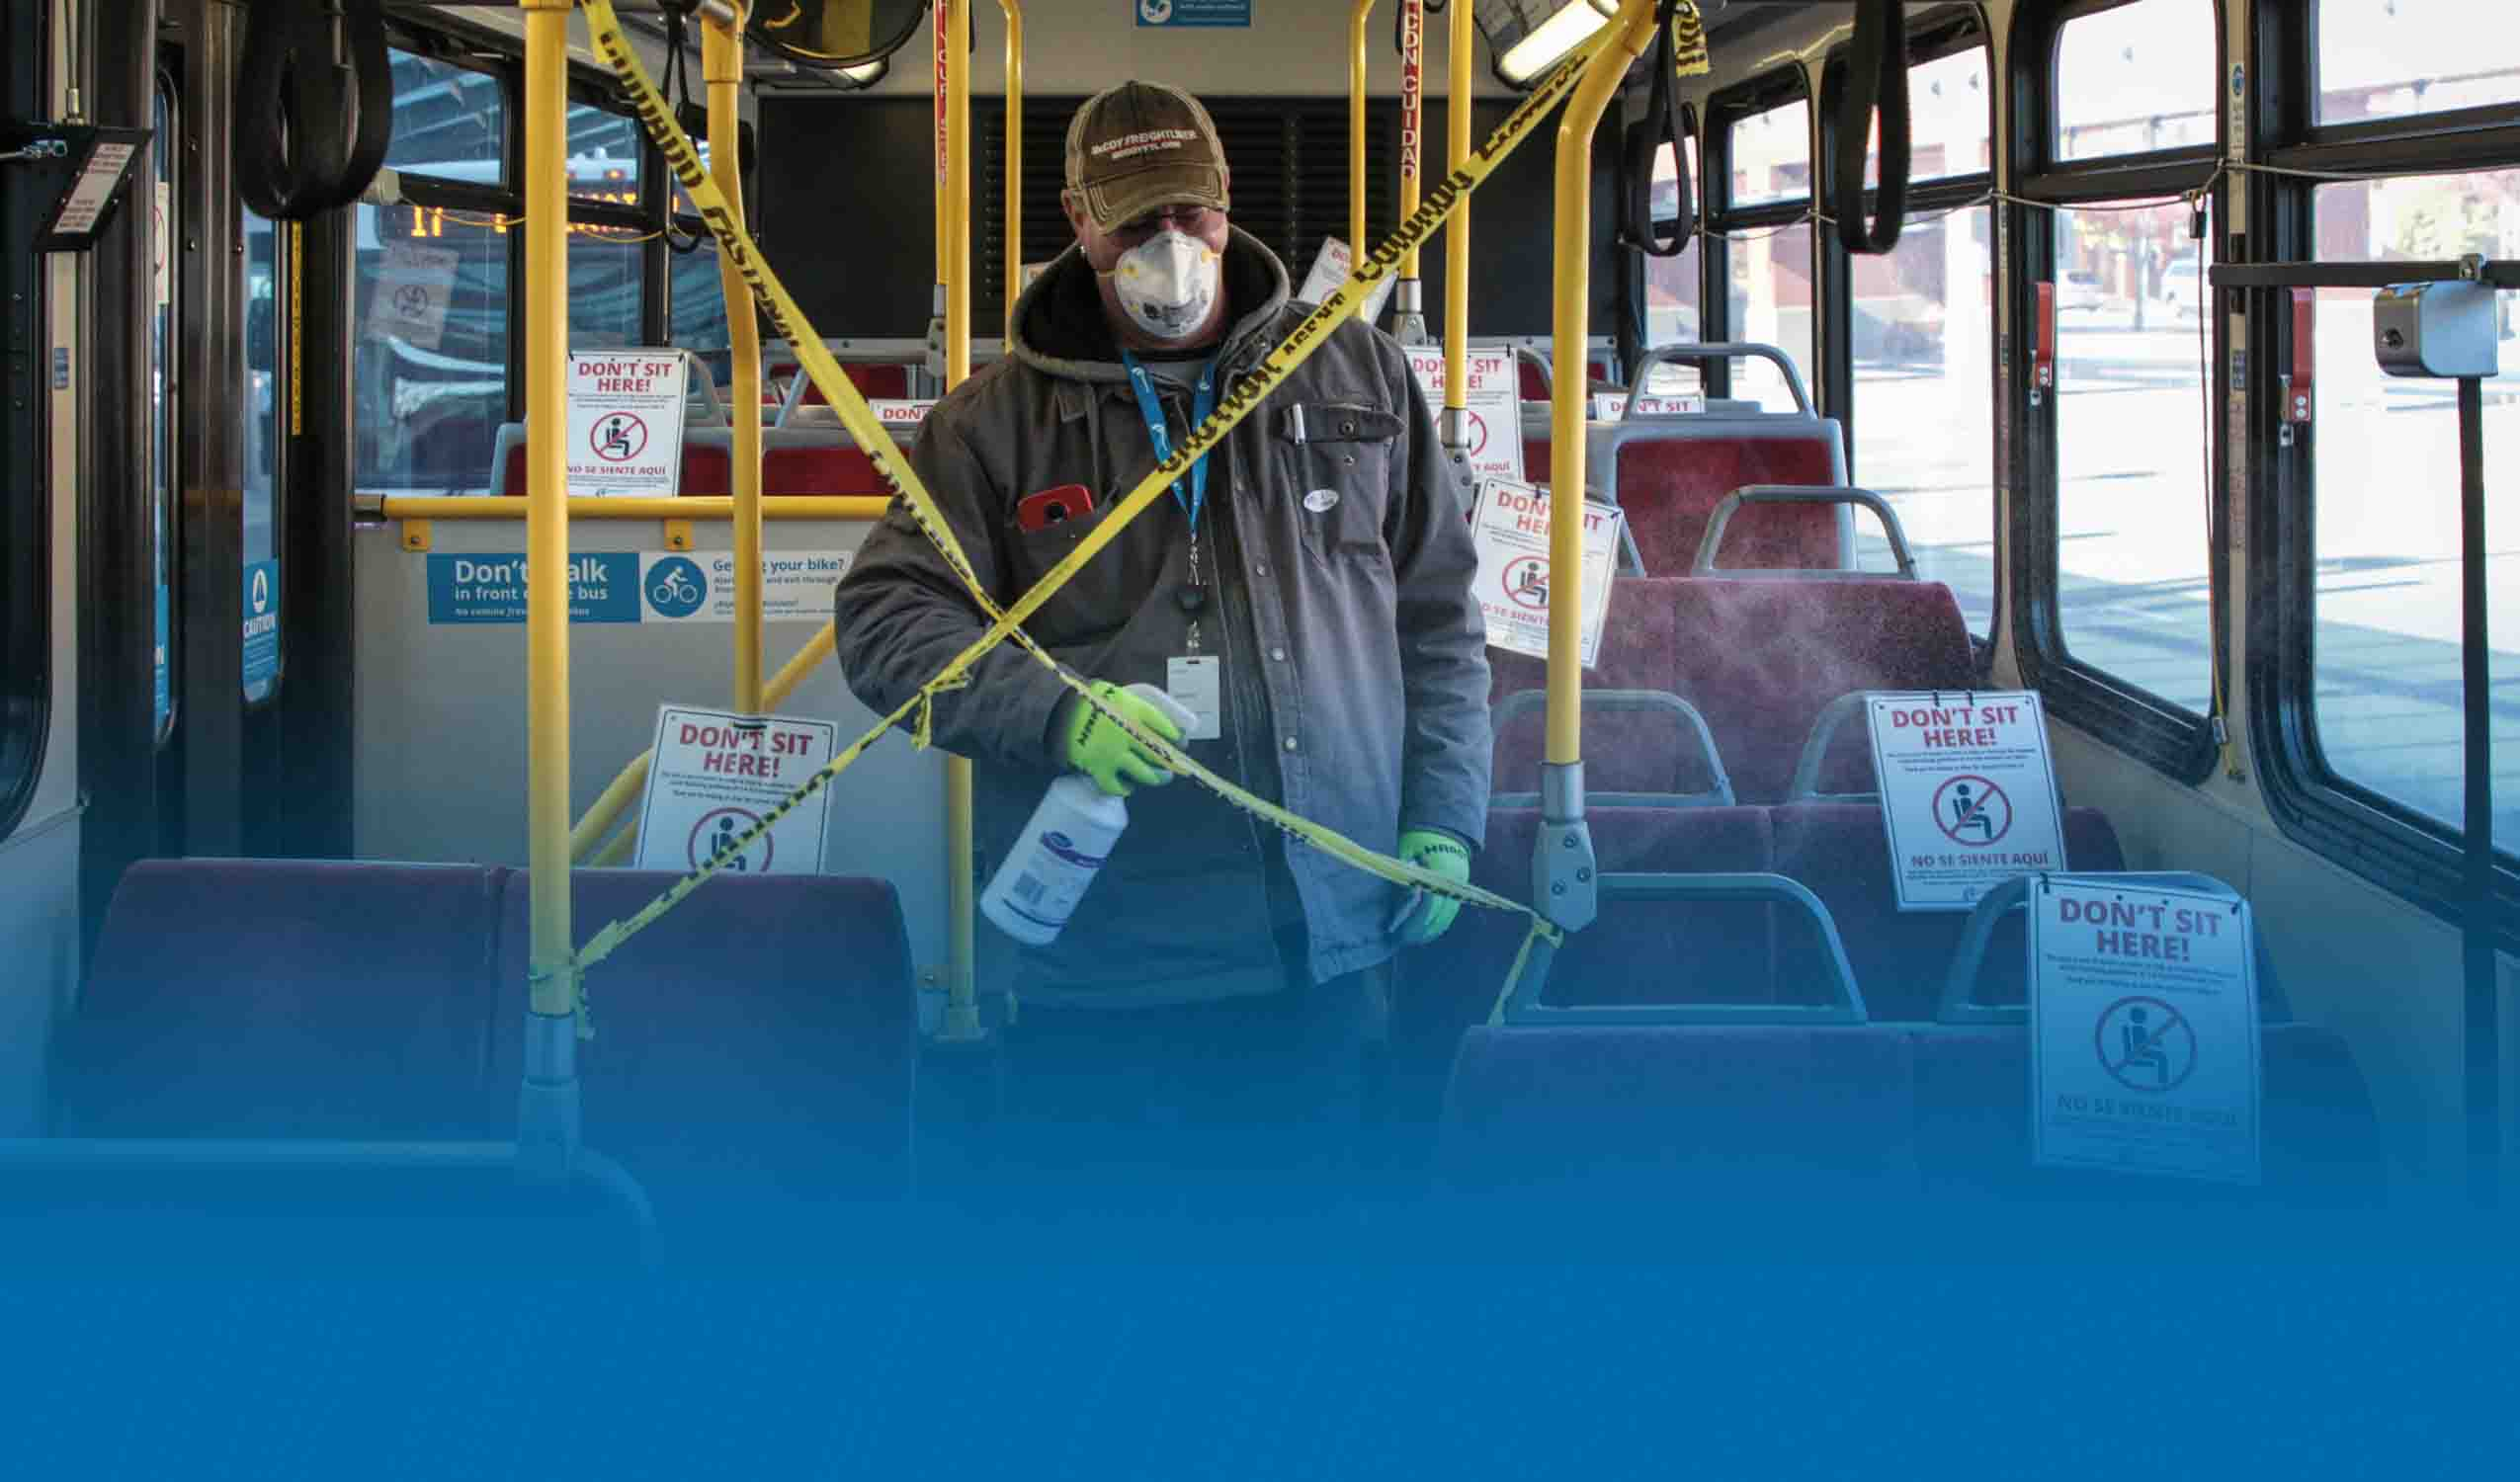 Facilities Maintenance Worker Cleaning the Bus